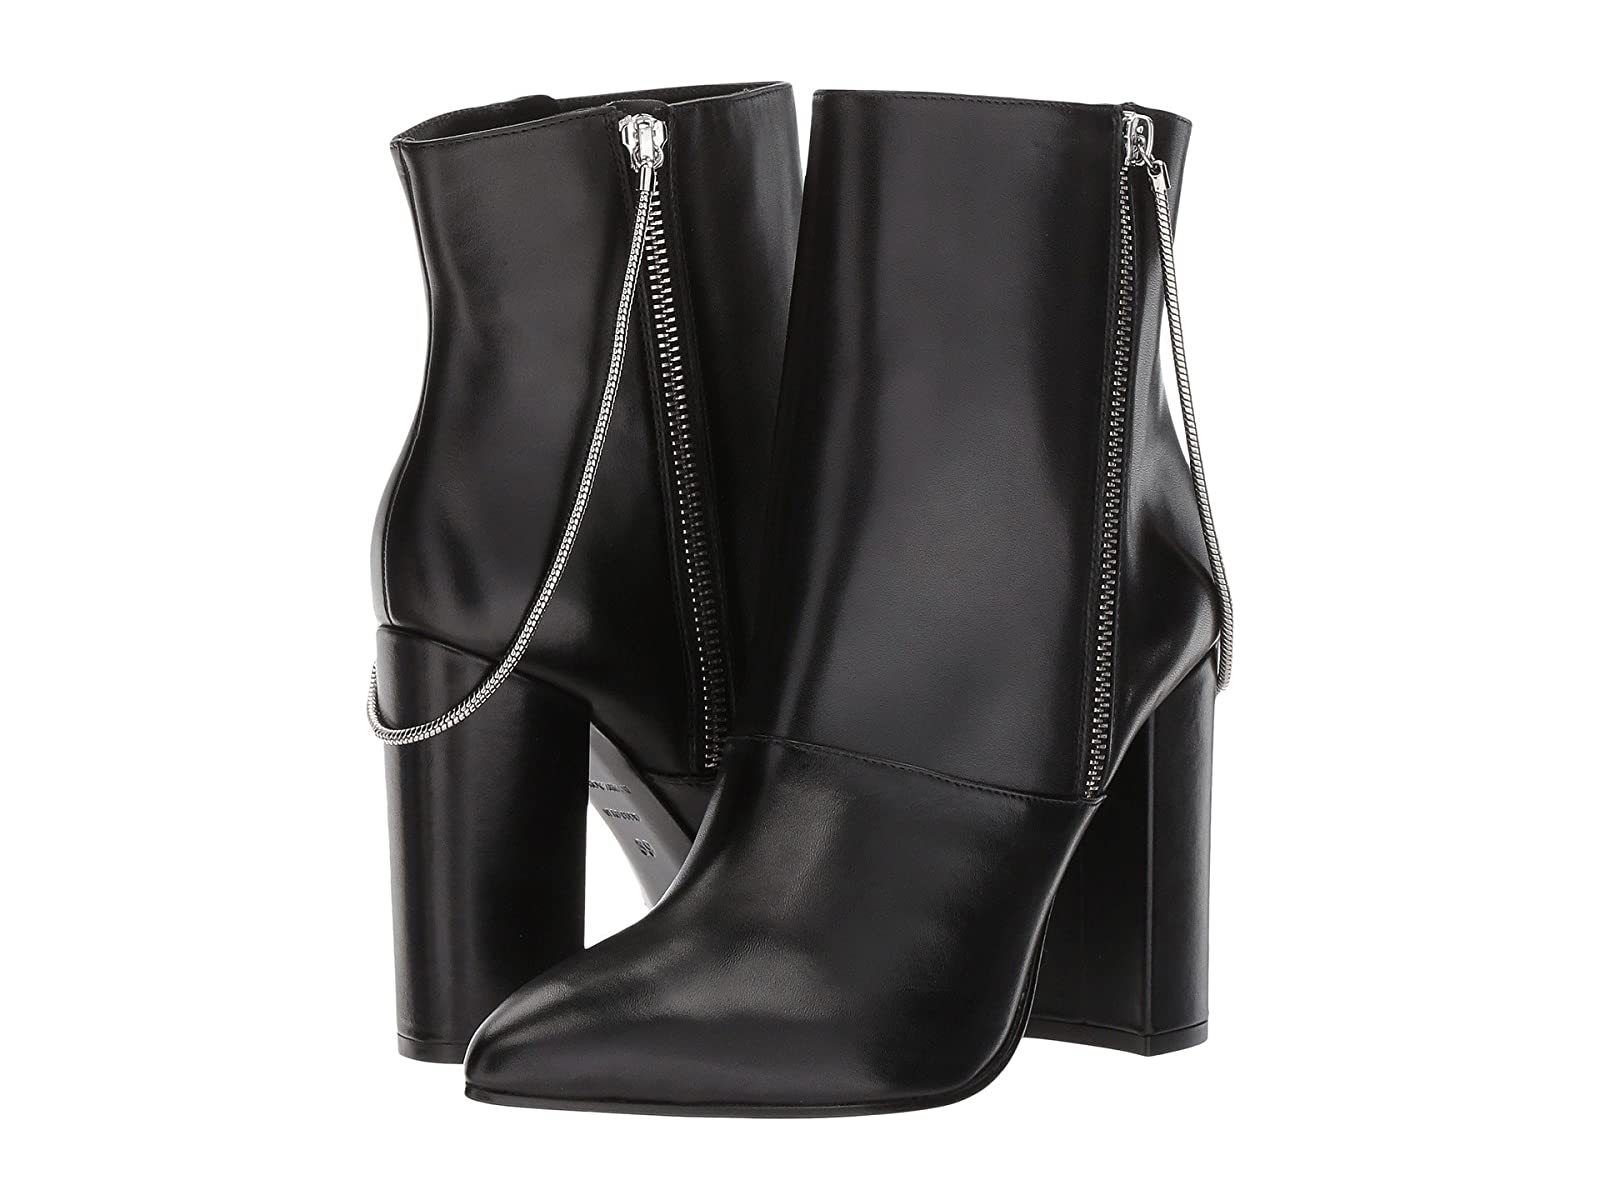 Emporio Armani X3N126Cheap and distinctive eye-catching shoes